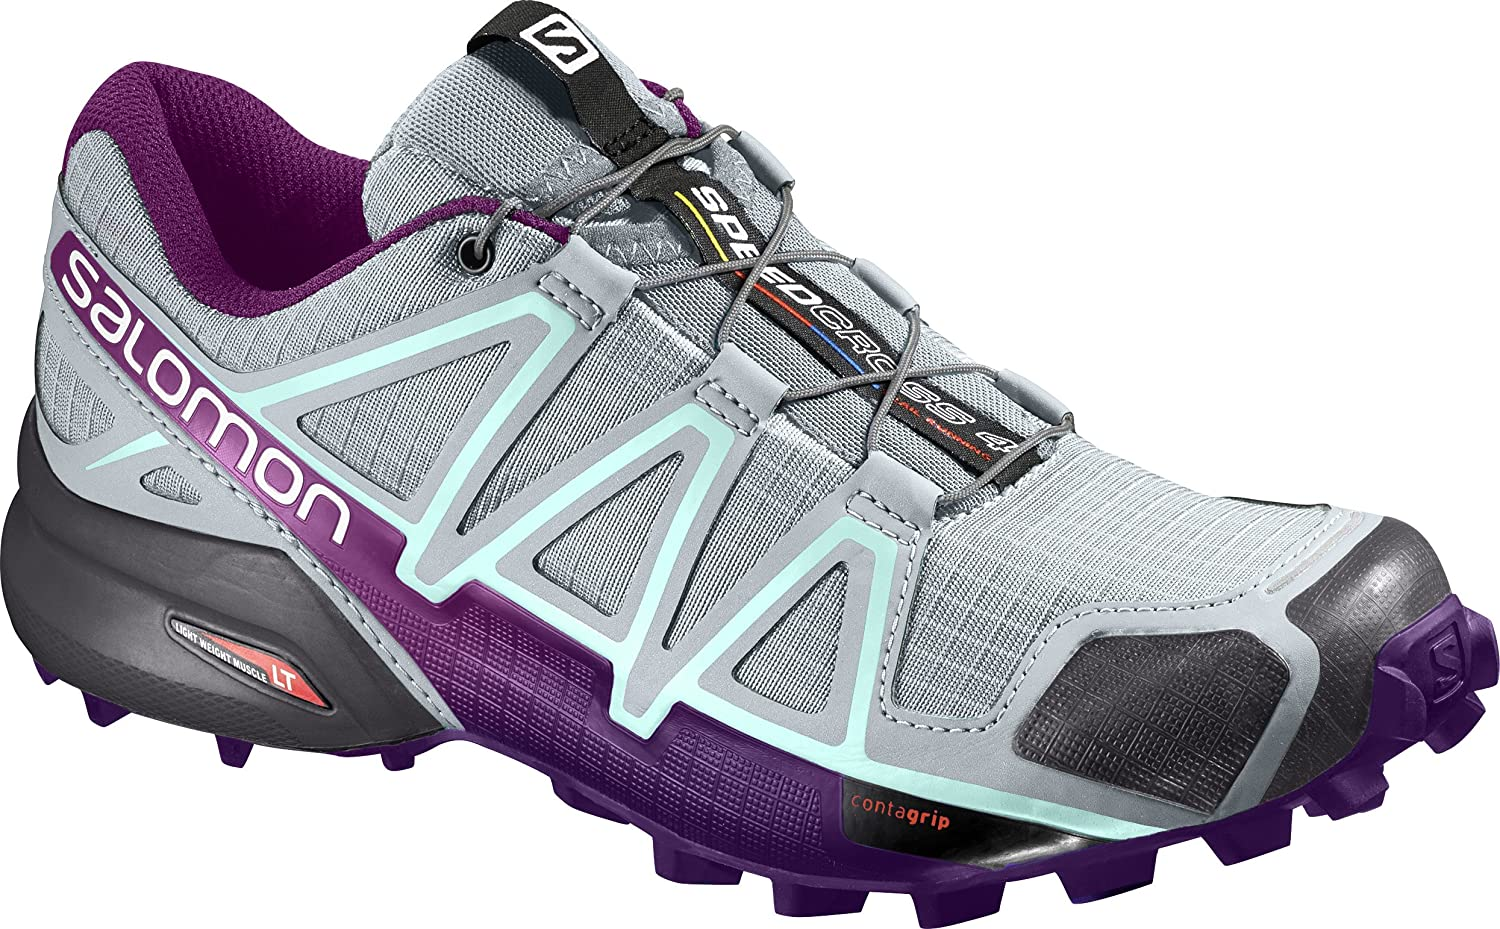 Salomon Women's Speedcross 4 W Trail Runner B01HD2RYA6 6 M US|Quarry